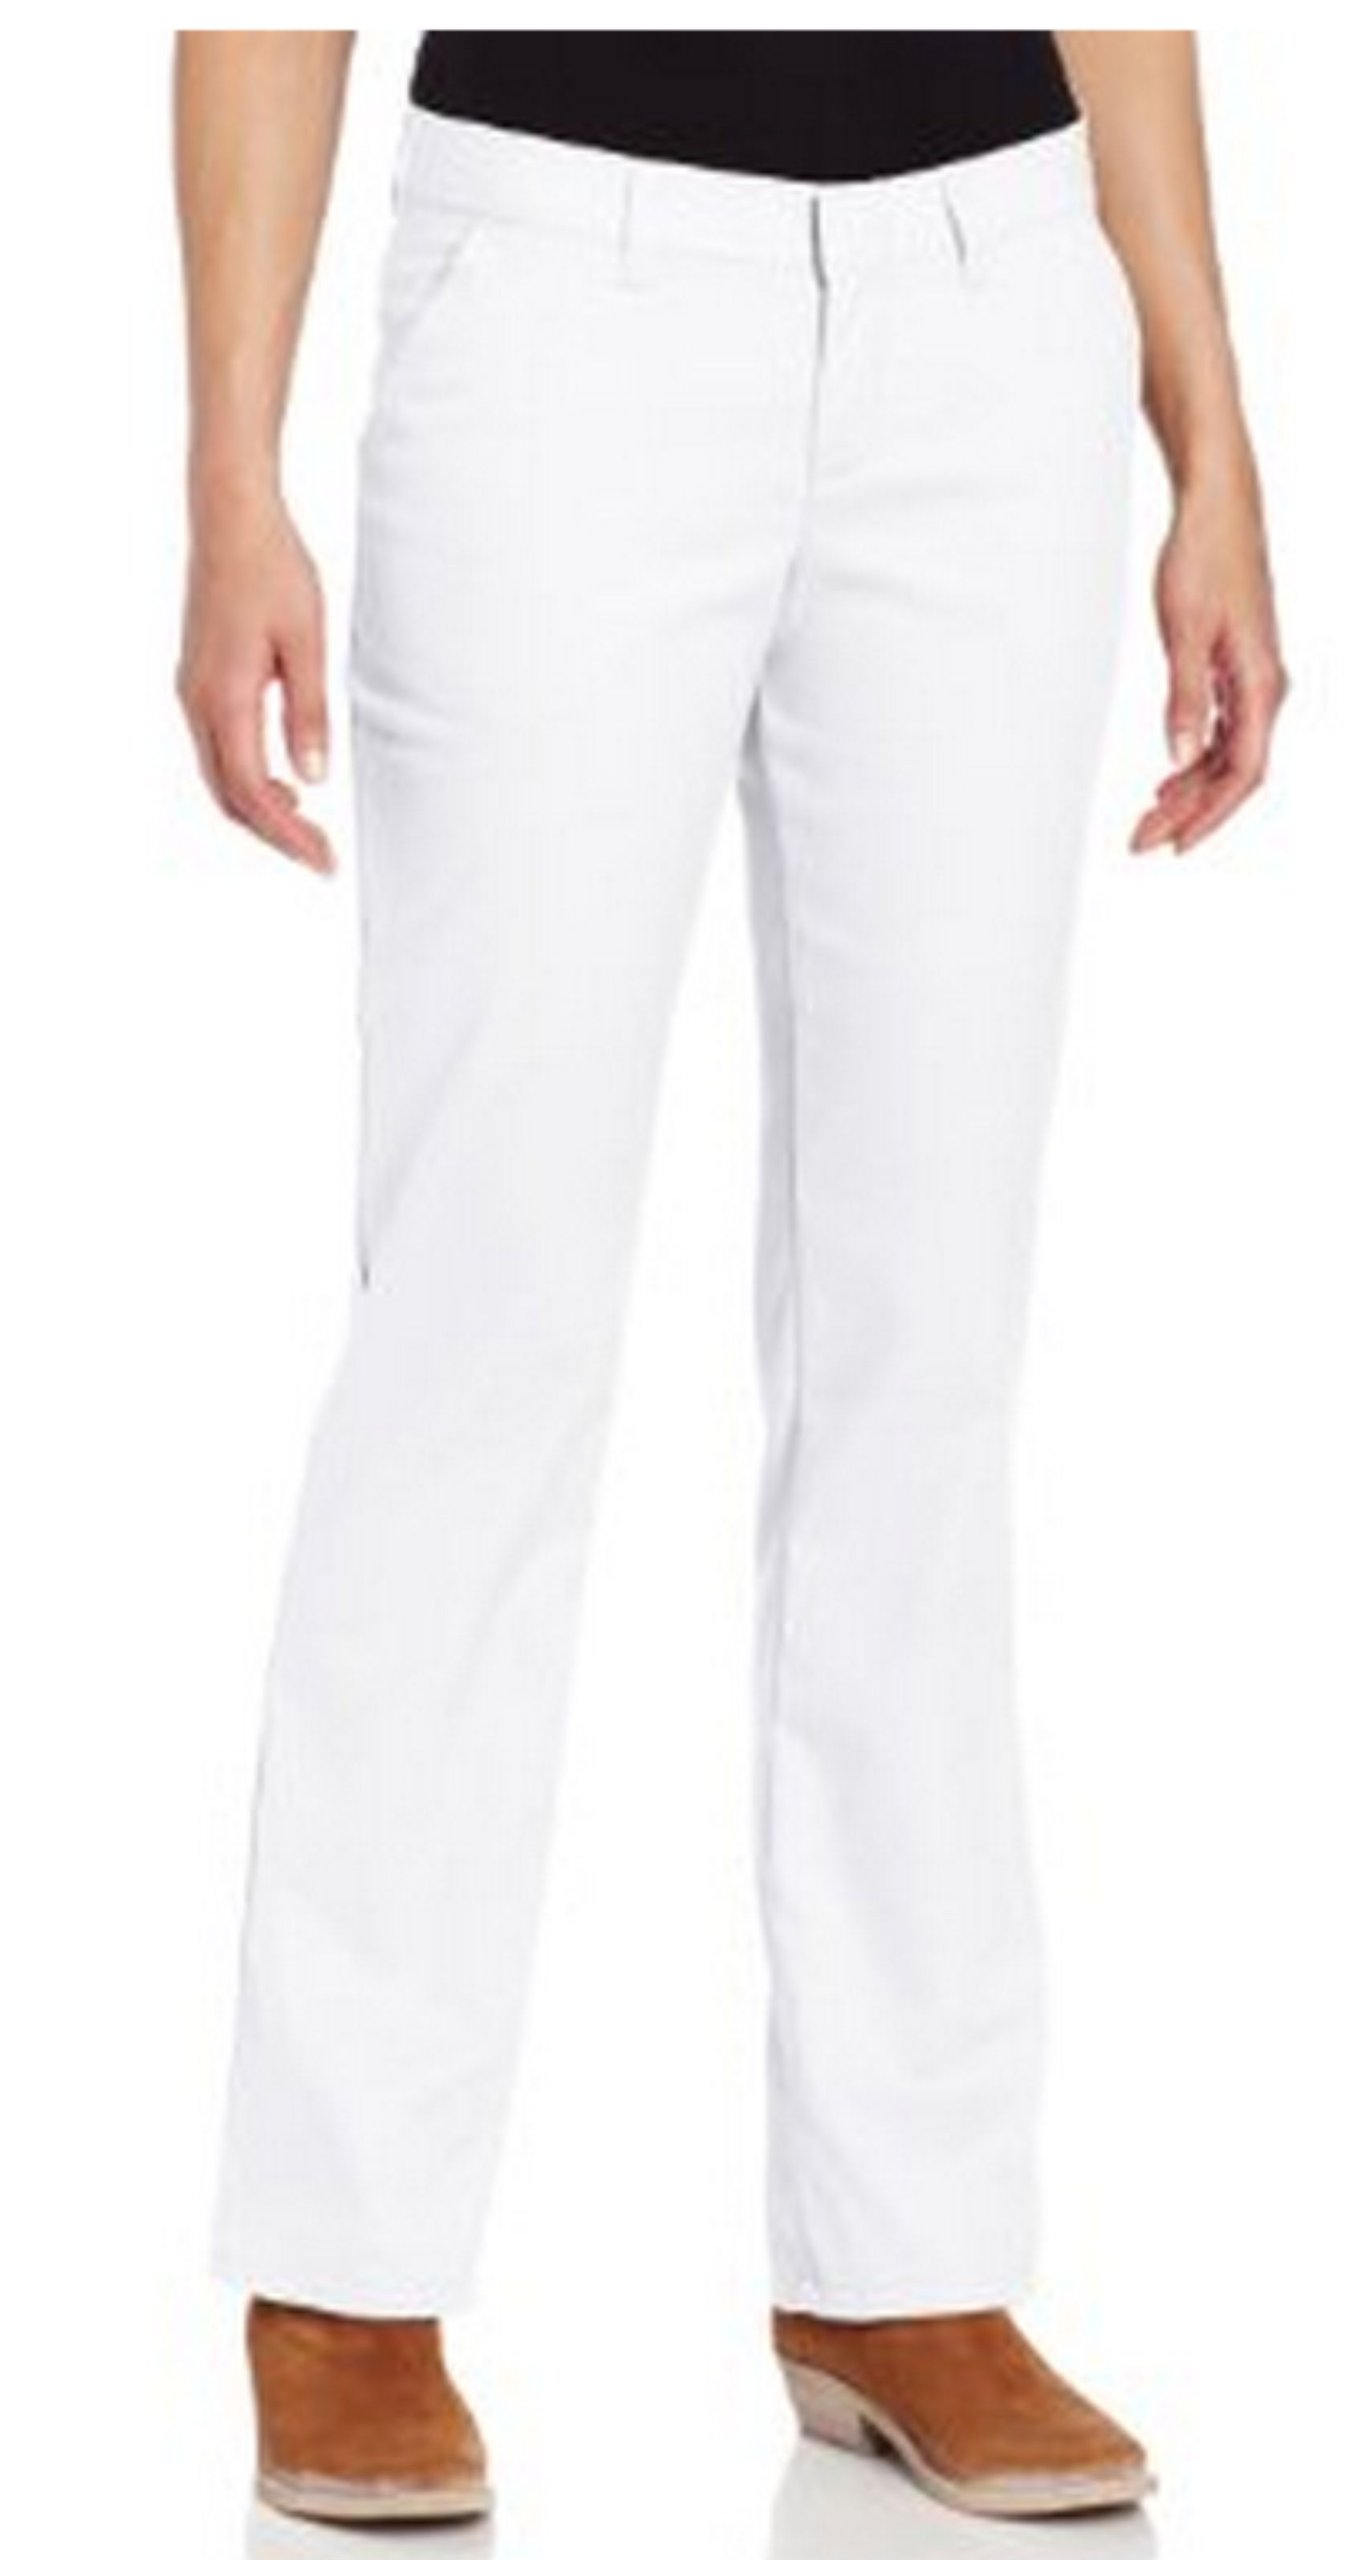 Dickies Women's Wrinkle Resistant Flat Front Twill Pant With Stain Release Finish,White,8 Regular